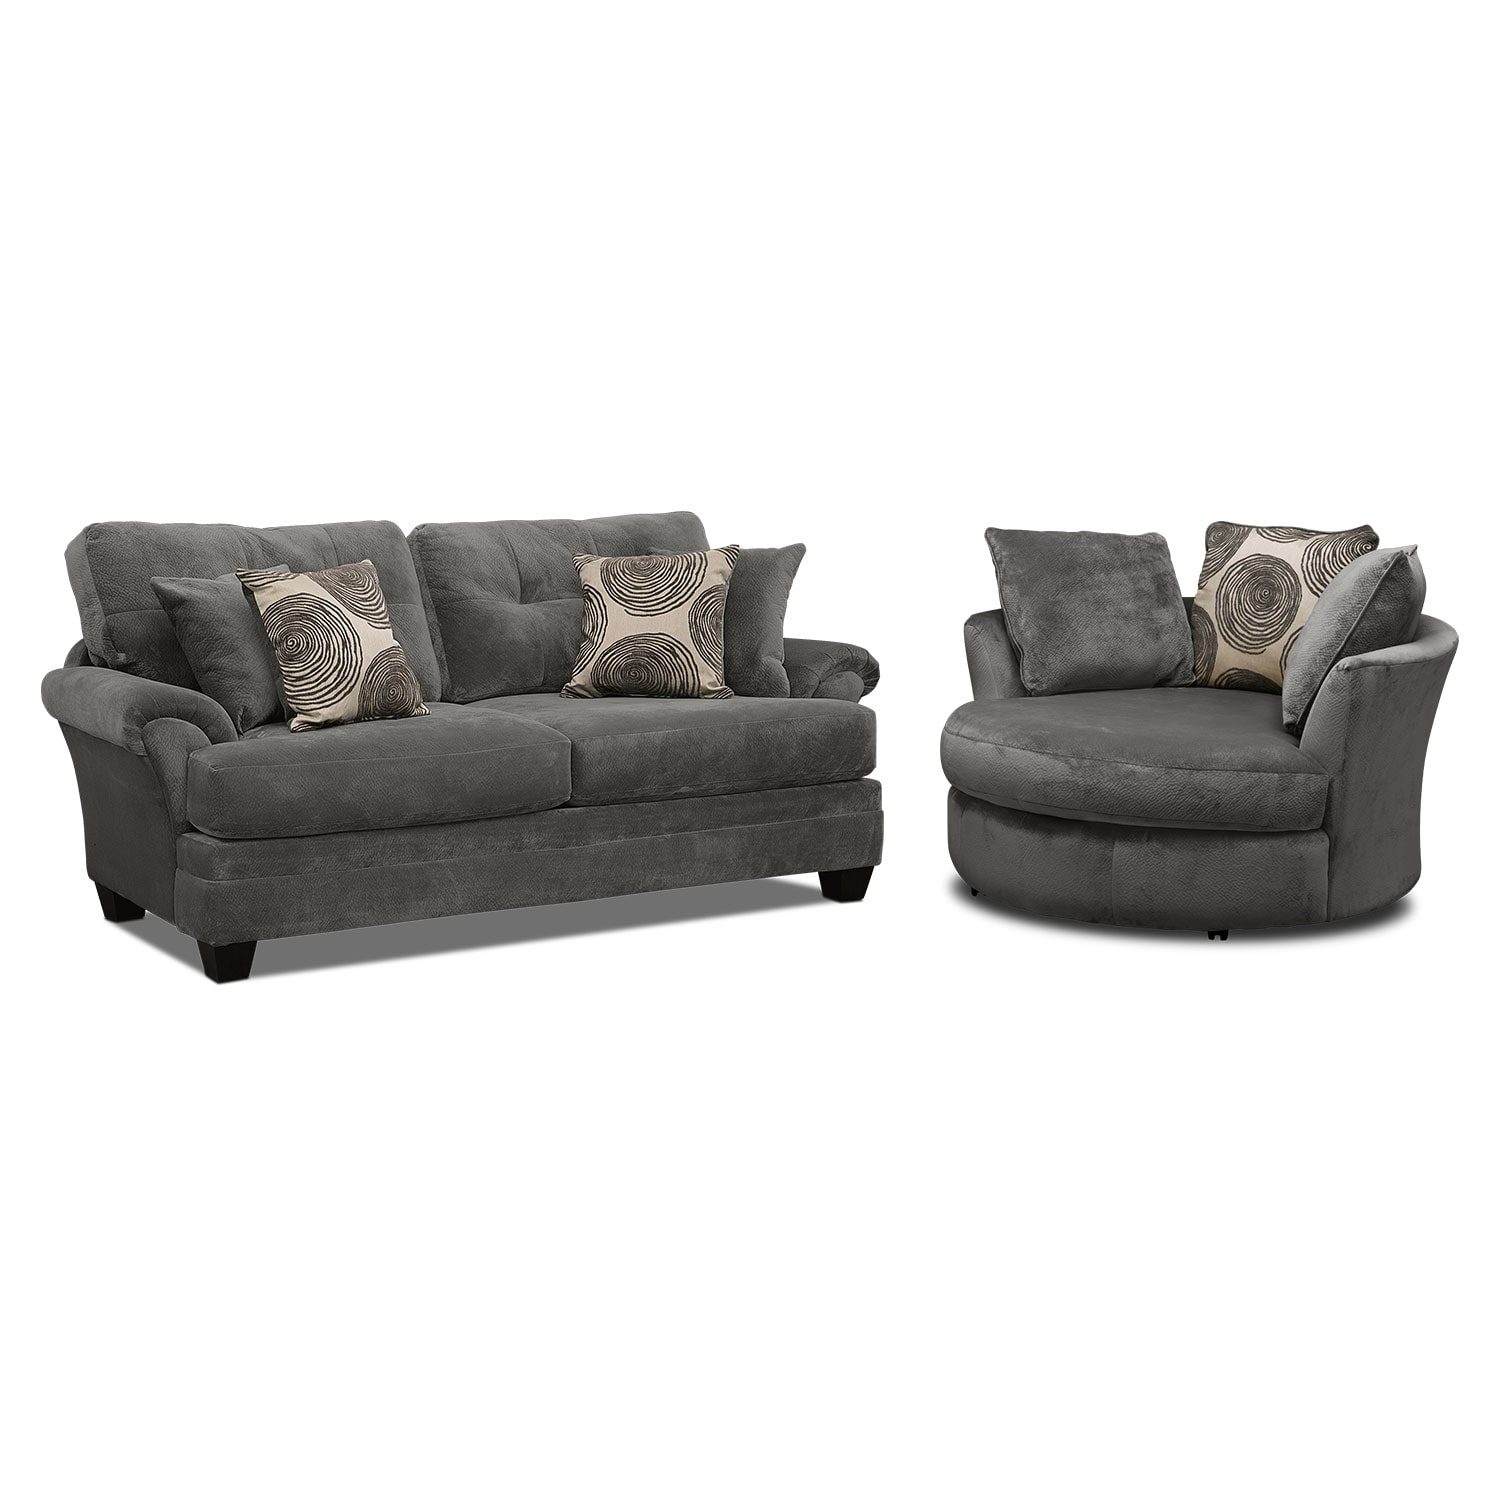 Cordelle Sofa Loveseat And Cocktail Ottoman Set Gray